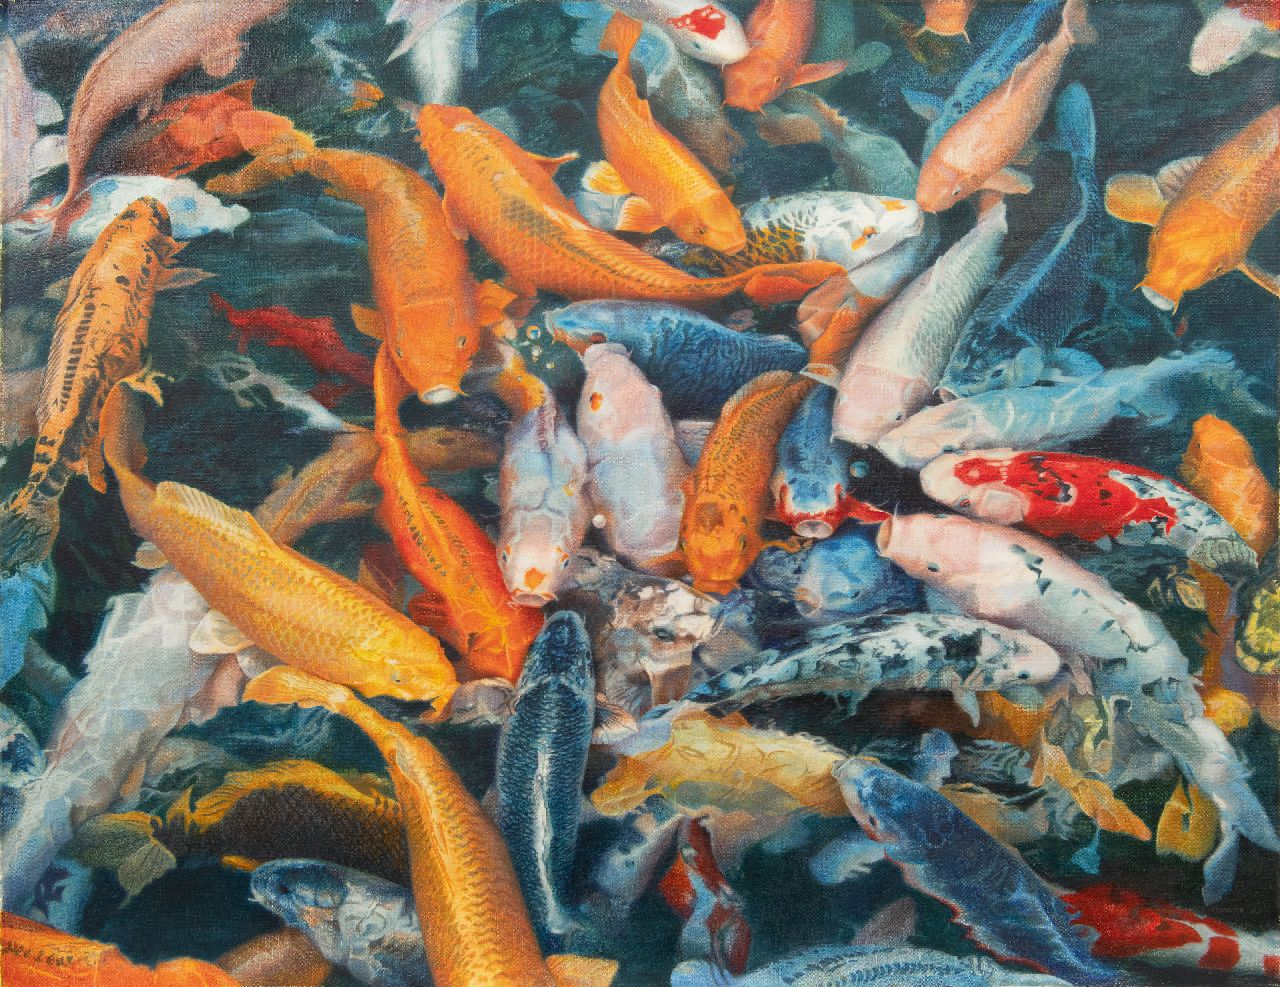 David Eddington | Koi Carps, oil on canvas, 96.4 x 124.3 cm, signed signed lower left and dated 1977